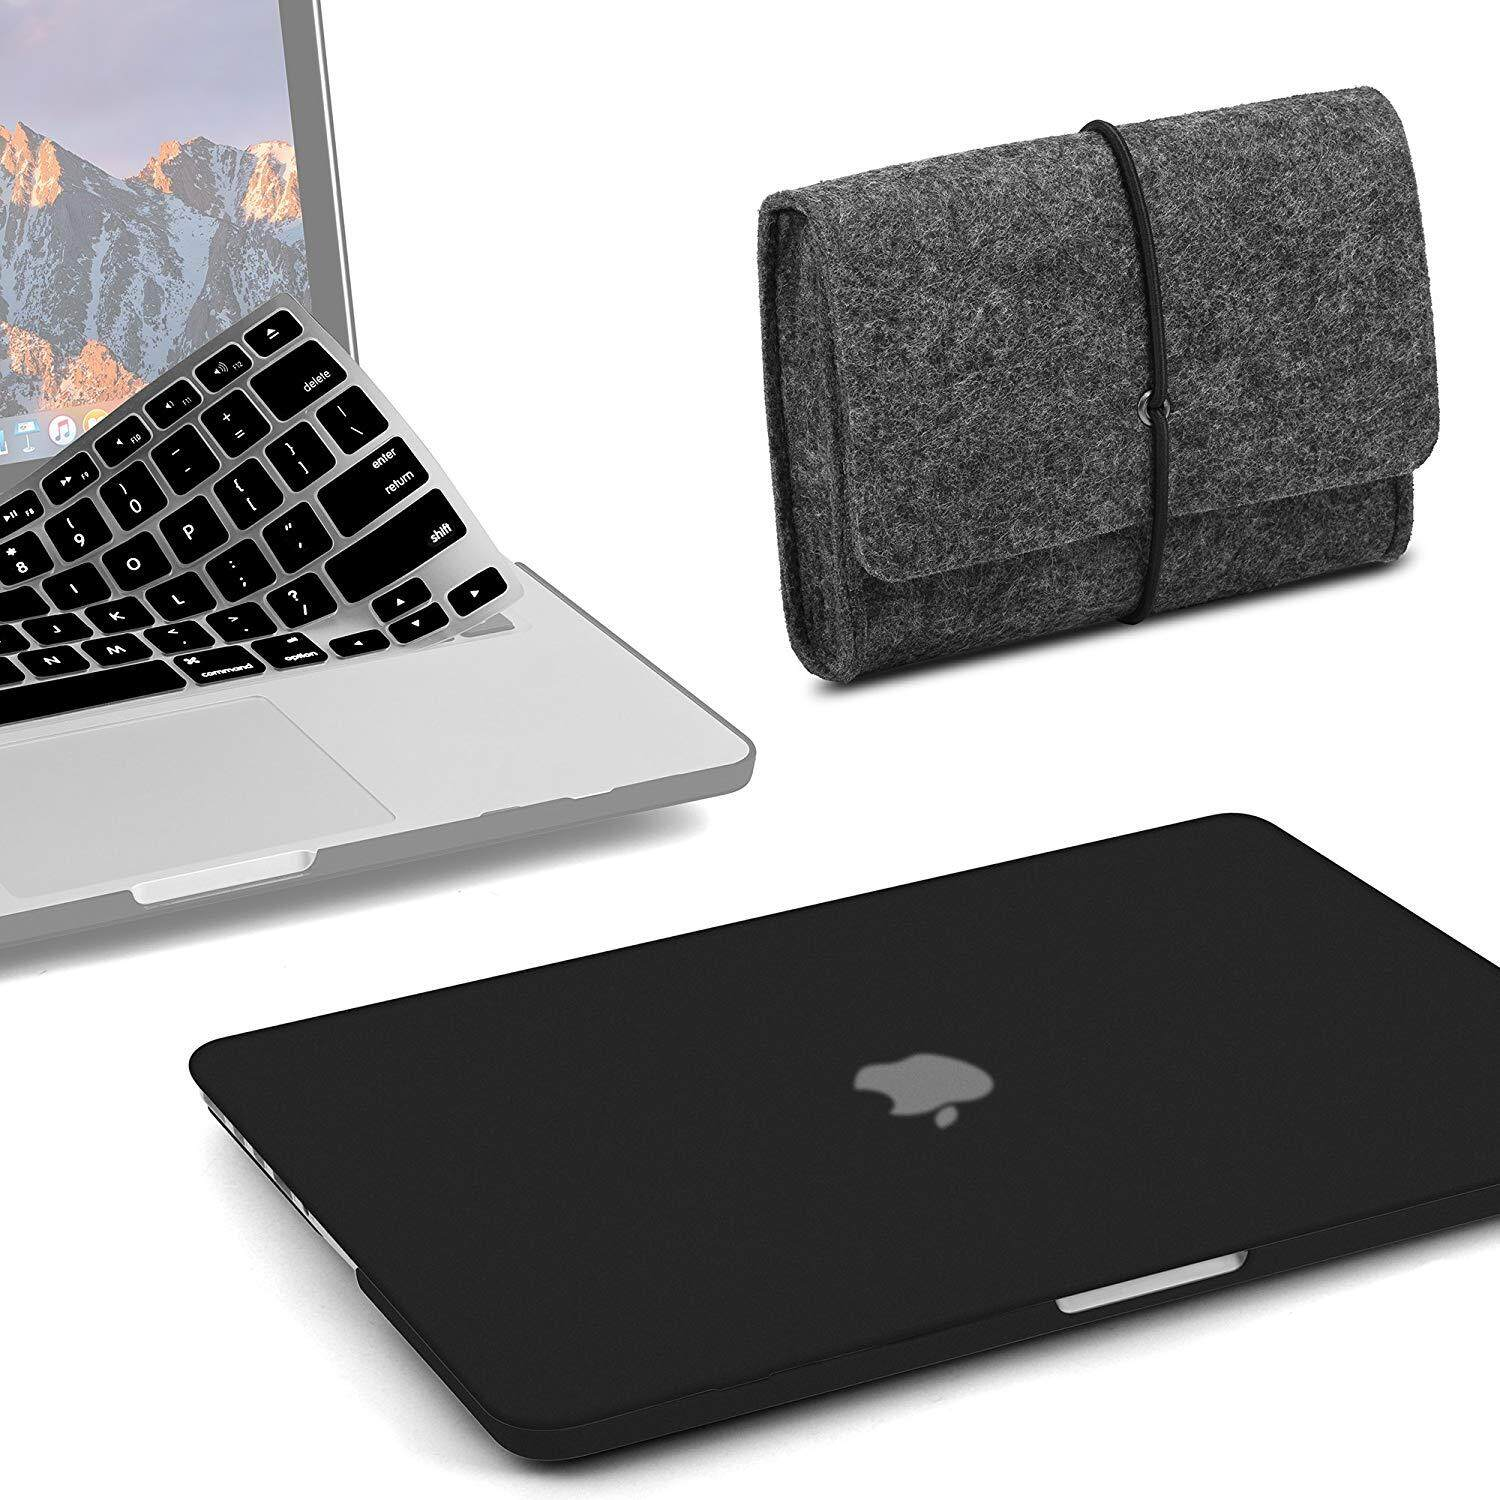 separation shoes db13a aa1df 3 in 1 Plastic Hard Case with Keyboard Cover with Felt Storage Pouch Bag  Only Compatible MacBook Pro (No USB-C) Retina 13 inch (No ...